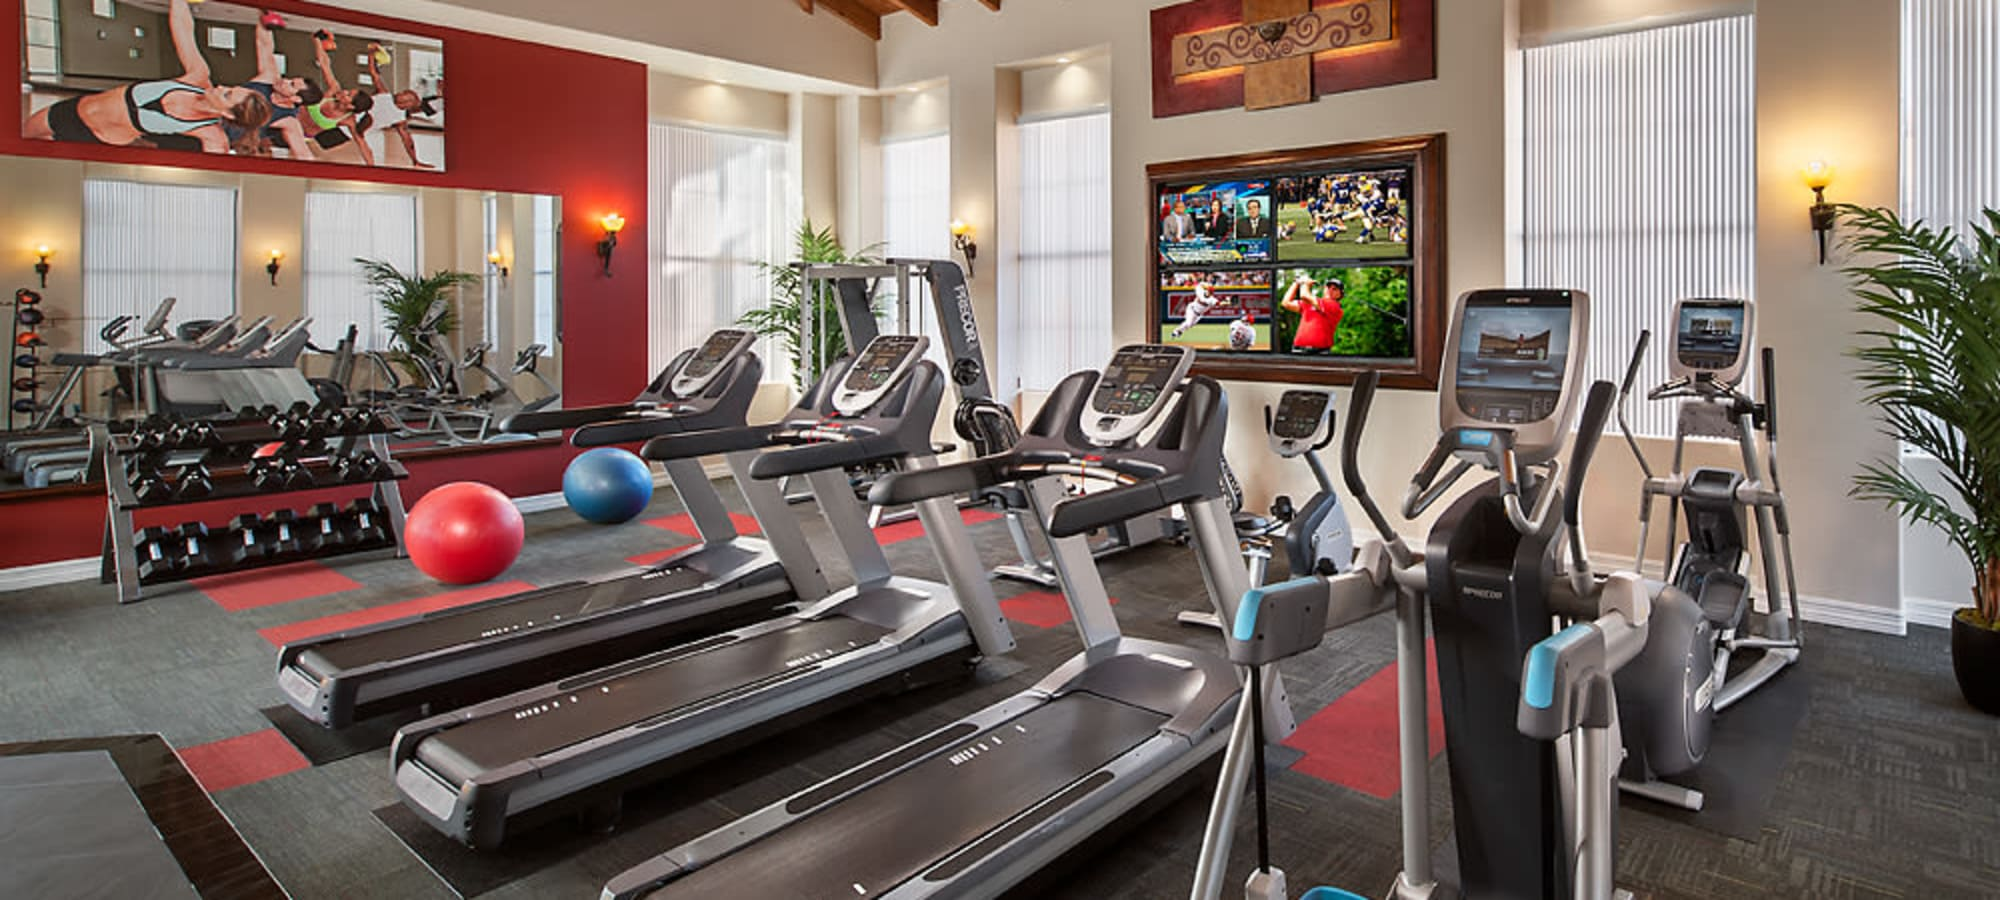 Community fitness center at San Norterra in Phoenix, Arizona